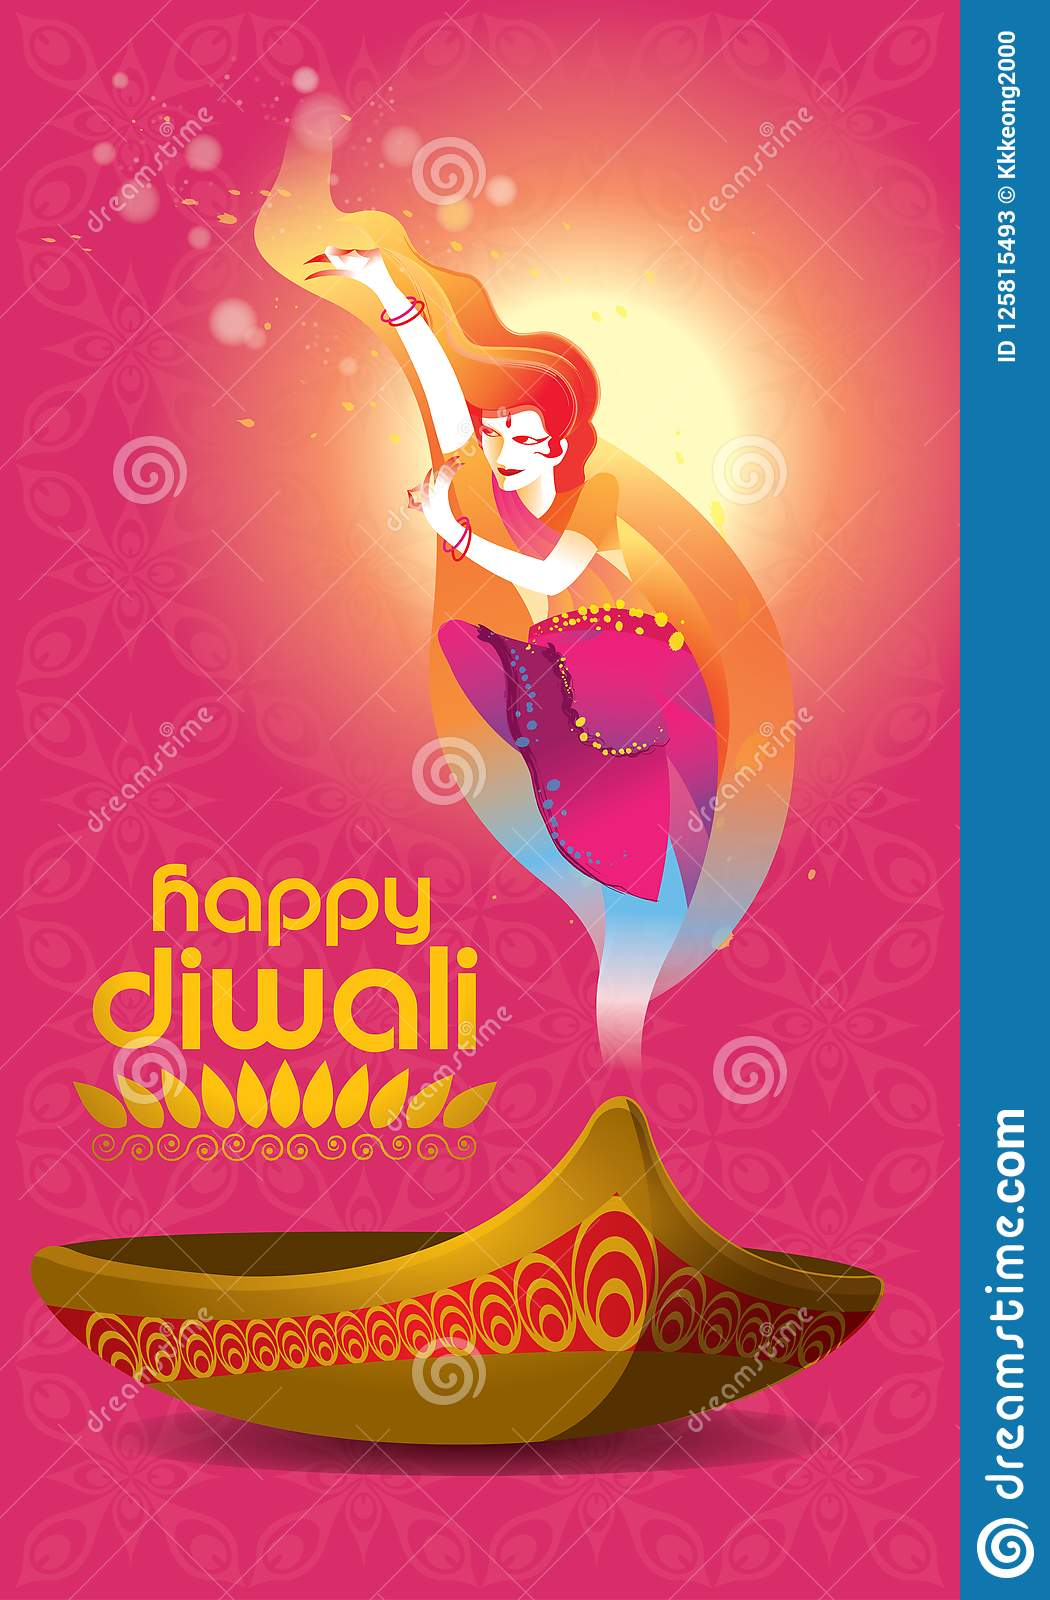 Vector for deepavali or diwali with a dancing woman oil lamp and download vector for deepavali or diwali with a dancing woman oil lamp and deepavali m4hsunfo